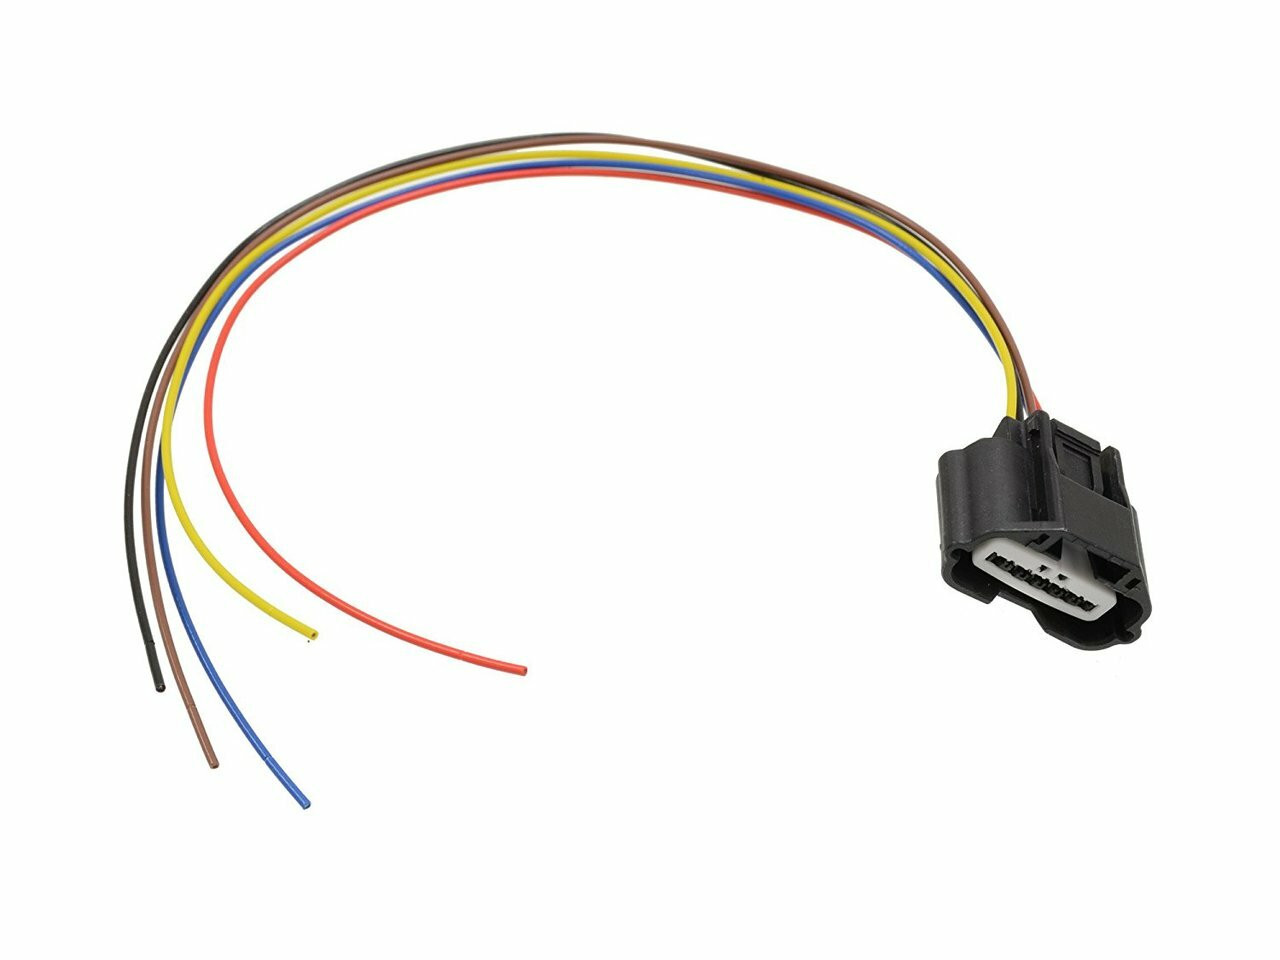 small resolution of 5 wire nissan maf mass air flow connector infiniti vq35 10 harness nissan maf wire harness